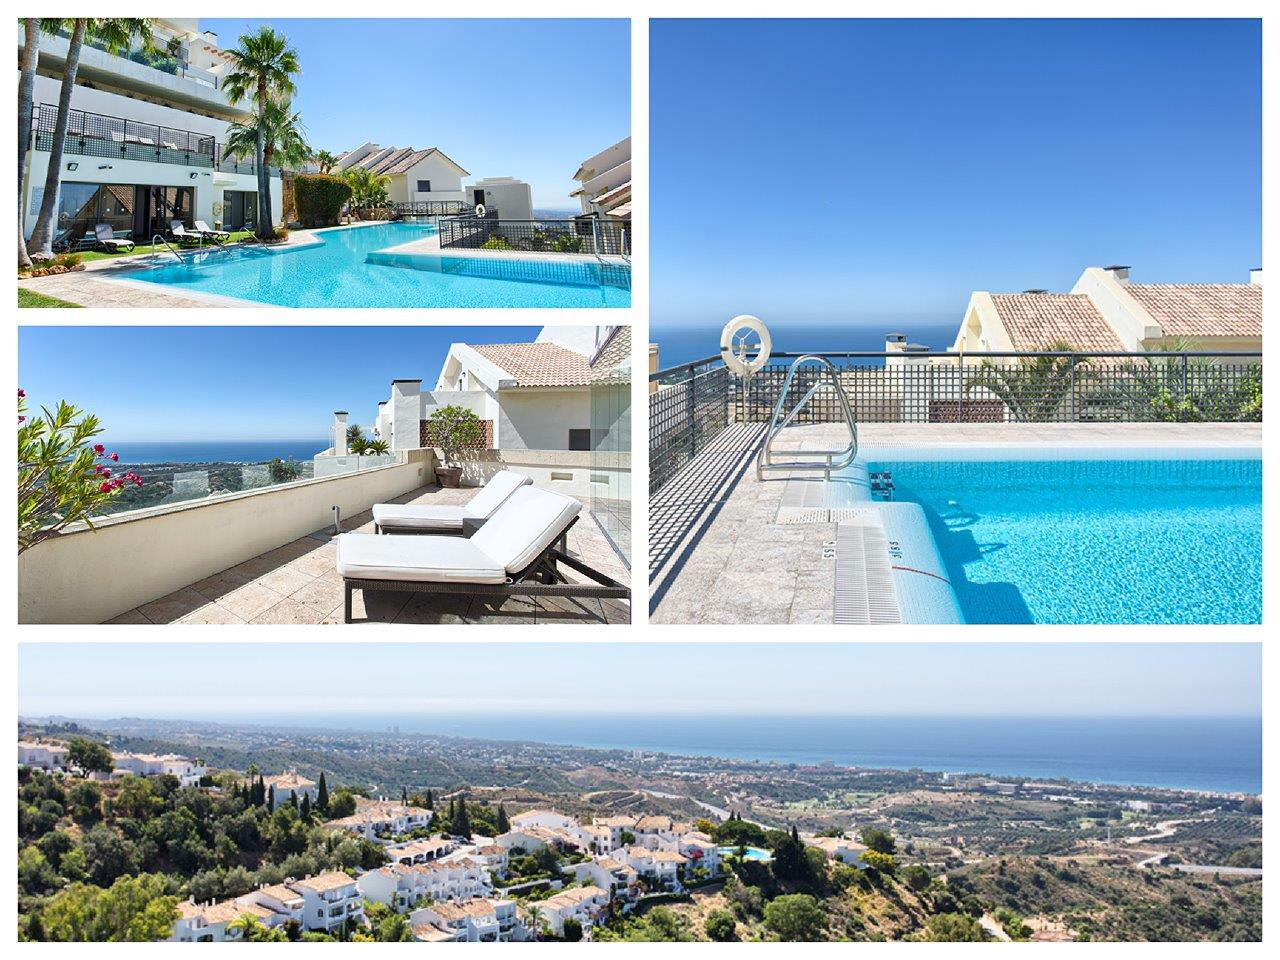 Penthouse in Los Monteros Hill Club (Marbella) for sale